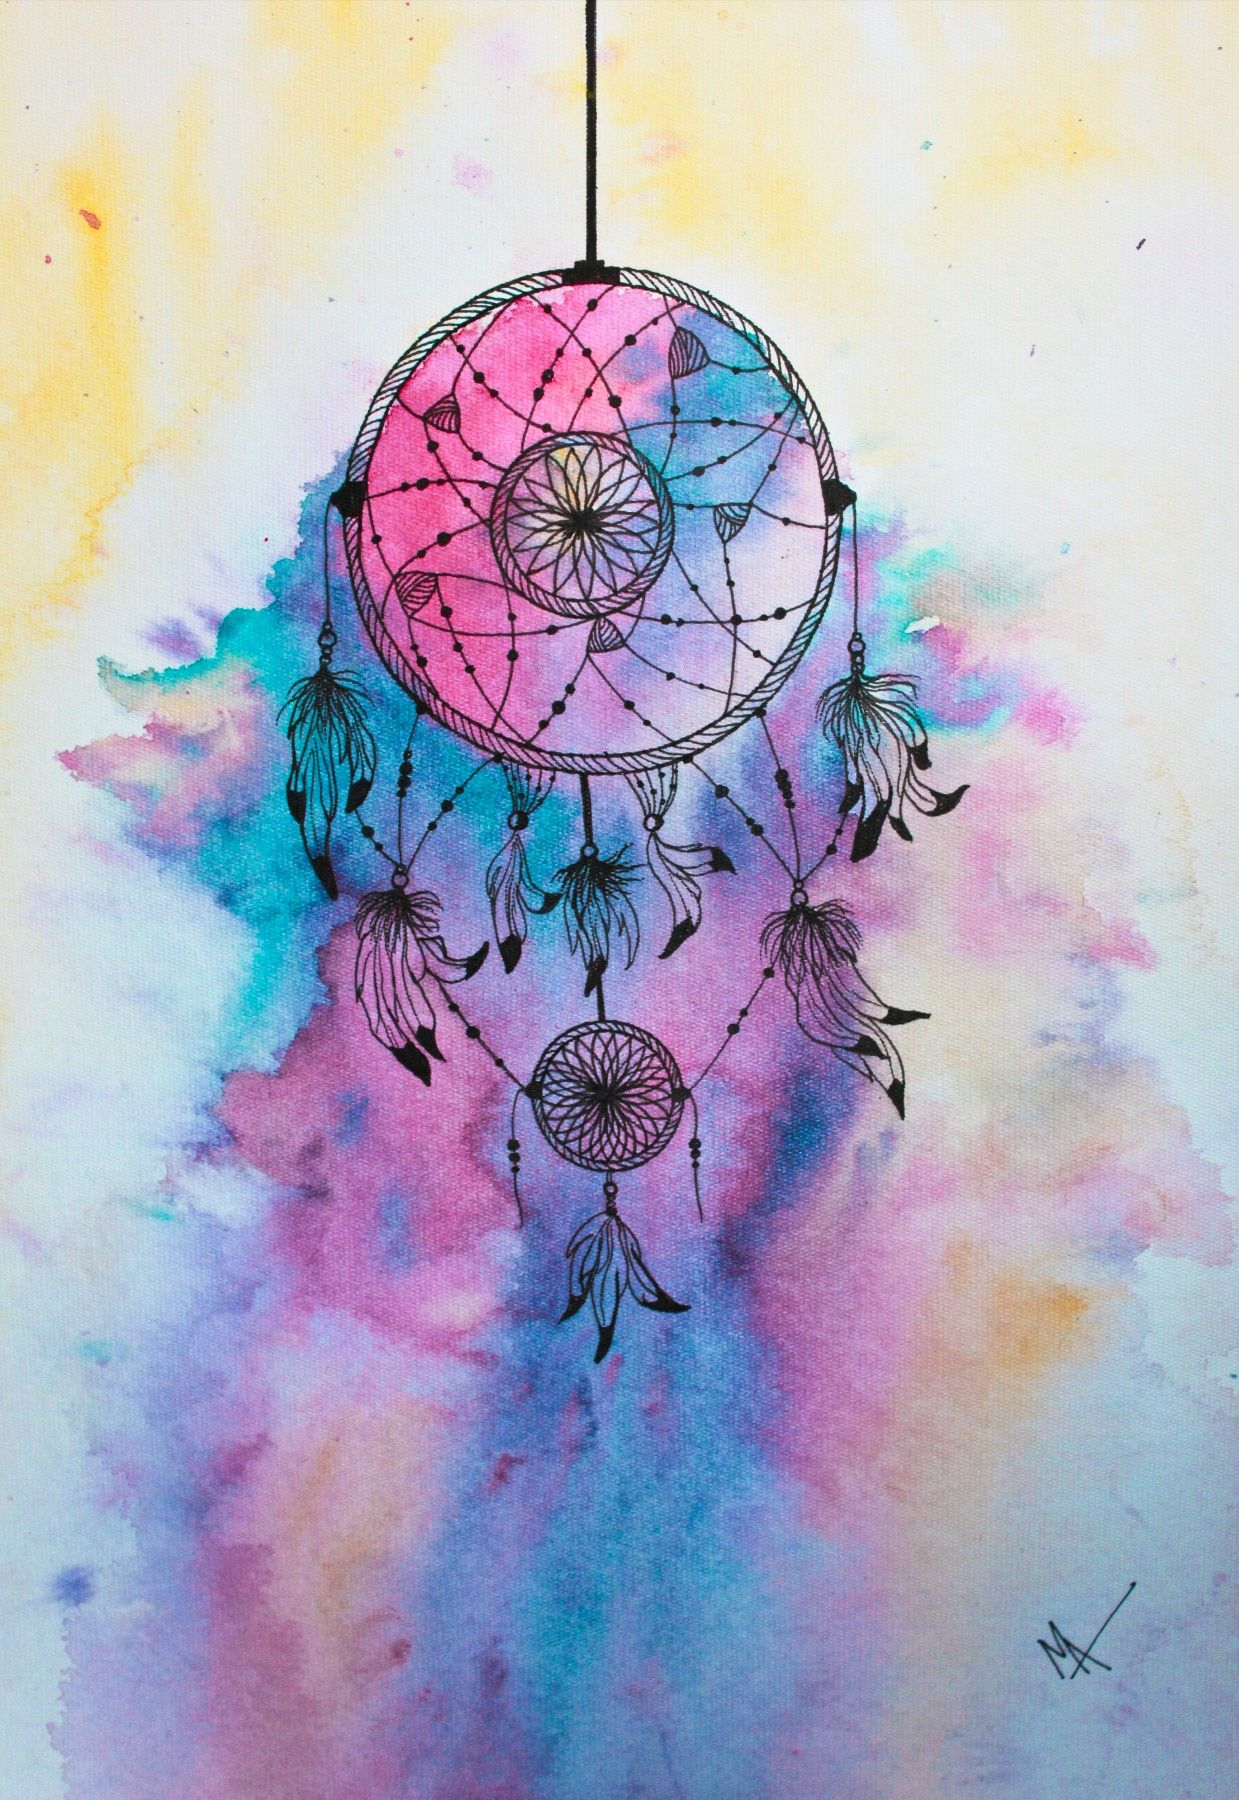 Pin Madphic Artistry Art Dreamcatcher Wallpaper